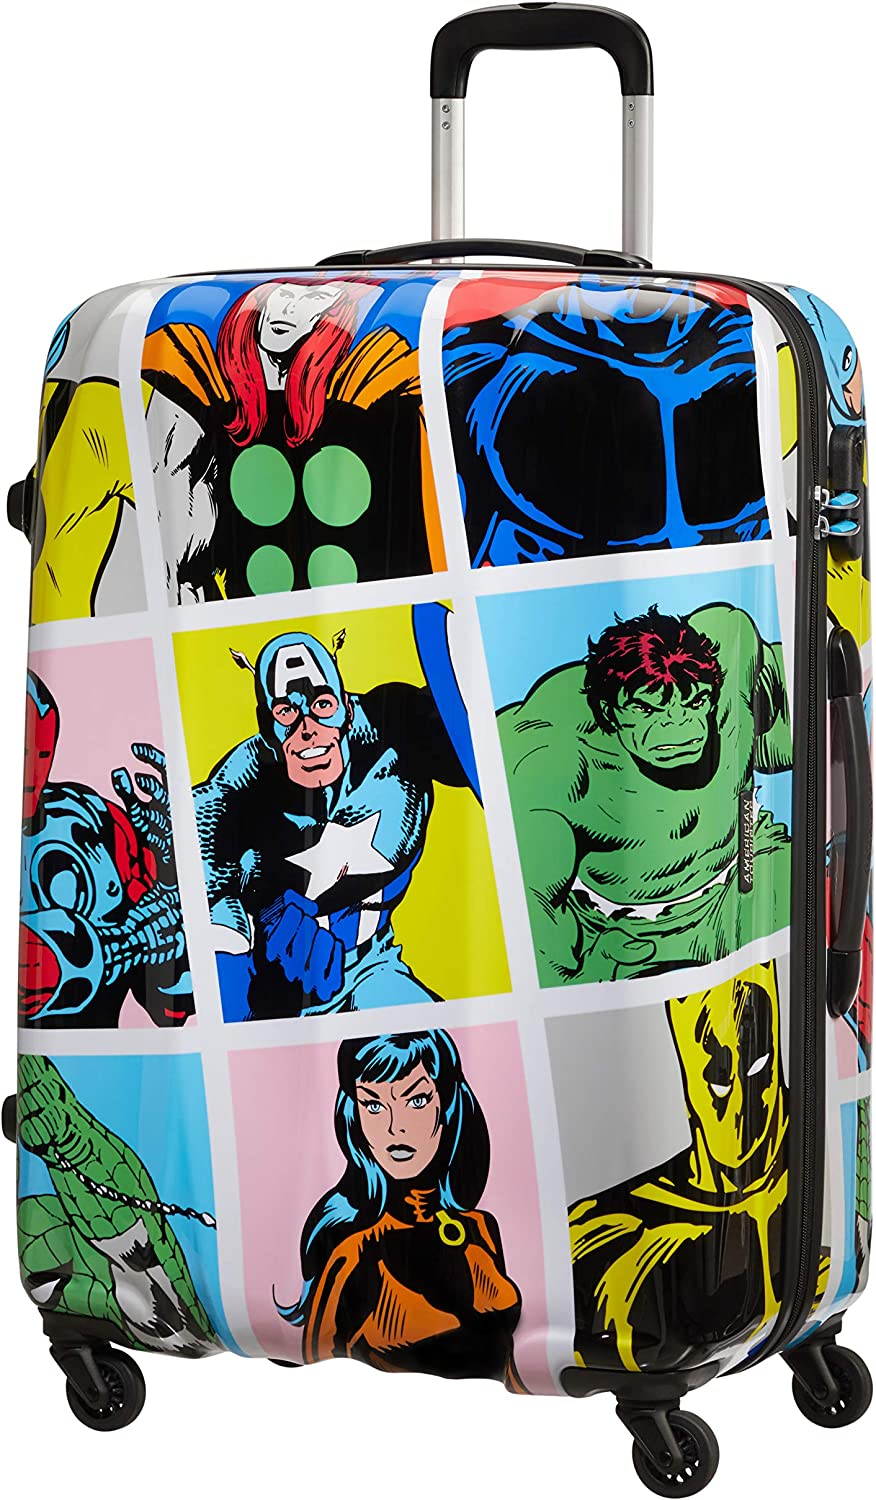 American Super intense Ranking TOP3 SALE Tourister Unisex_Adult Multicolored Luggage Suitcase